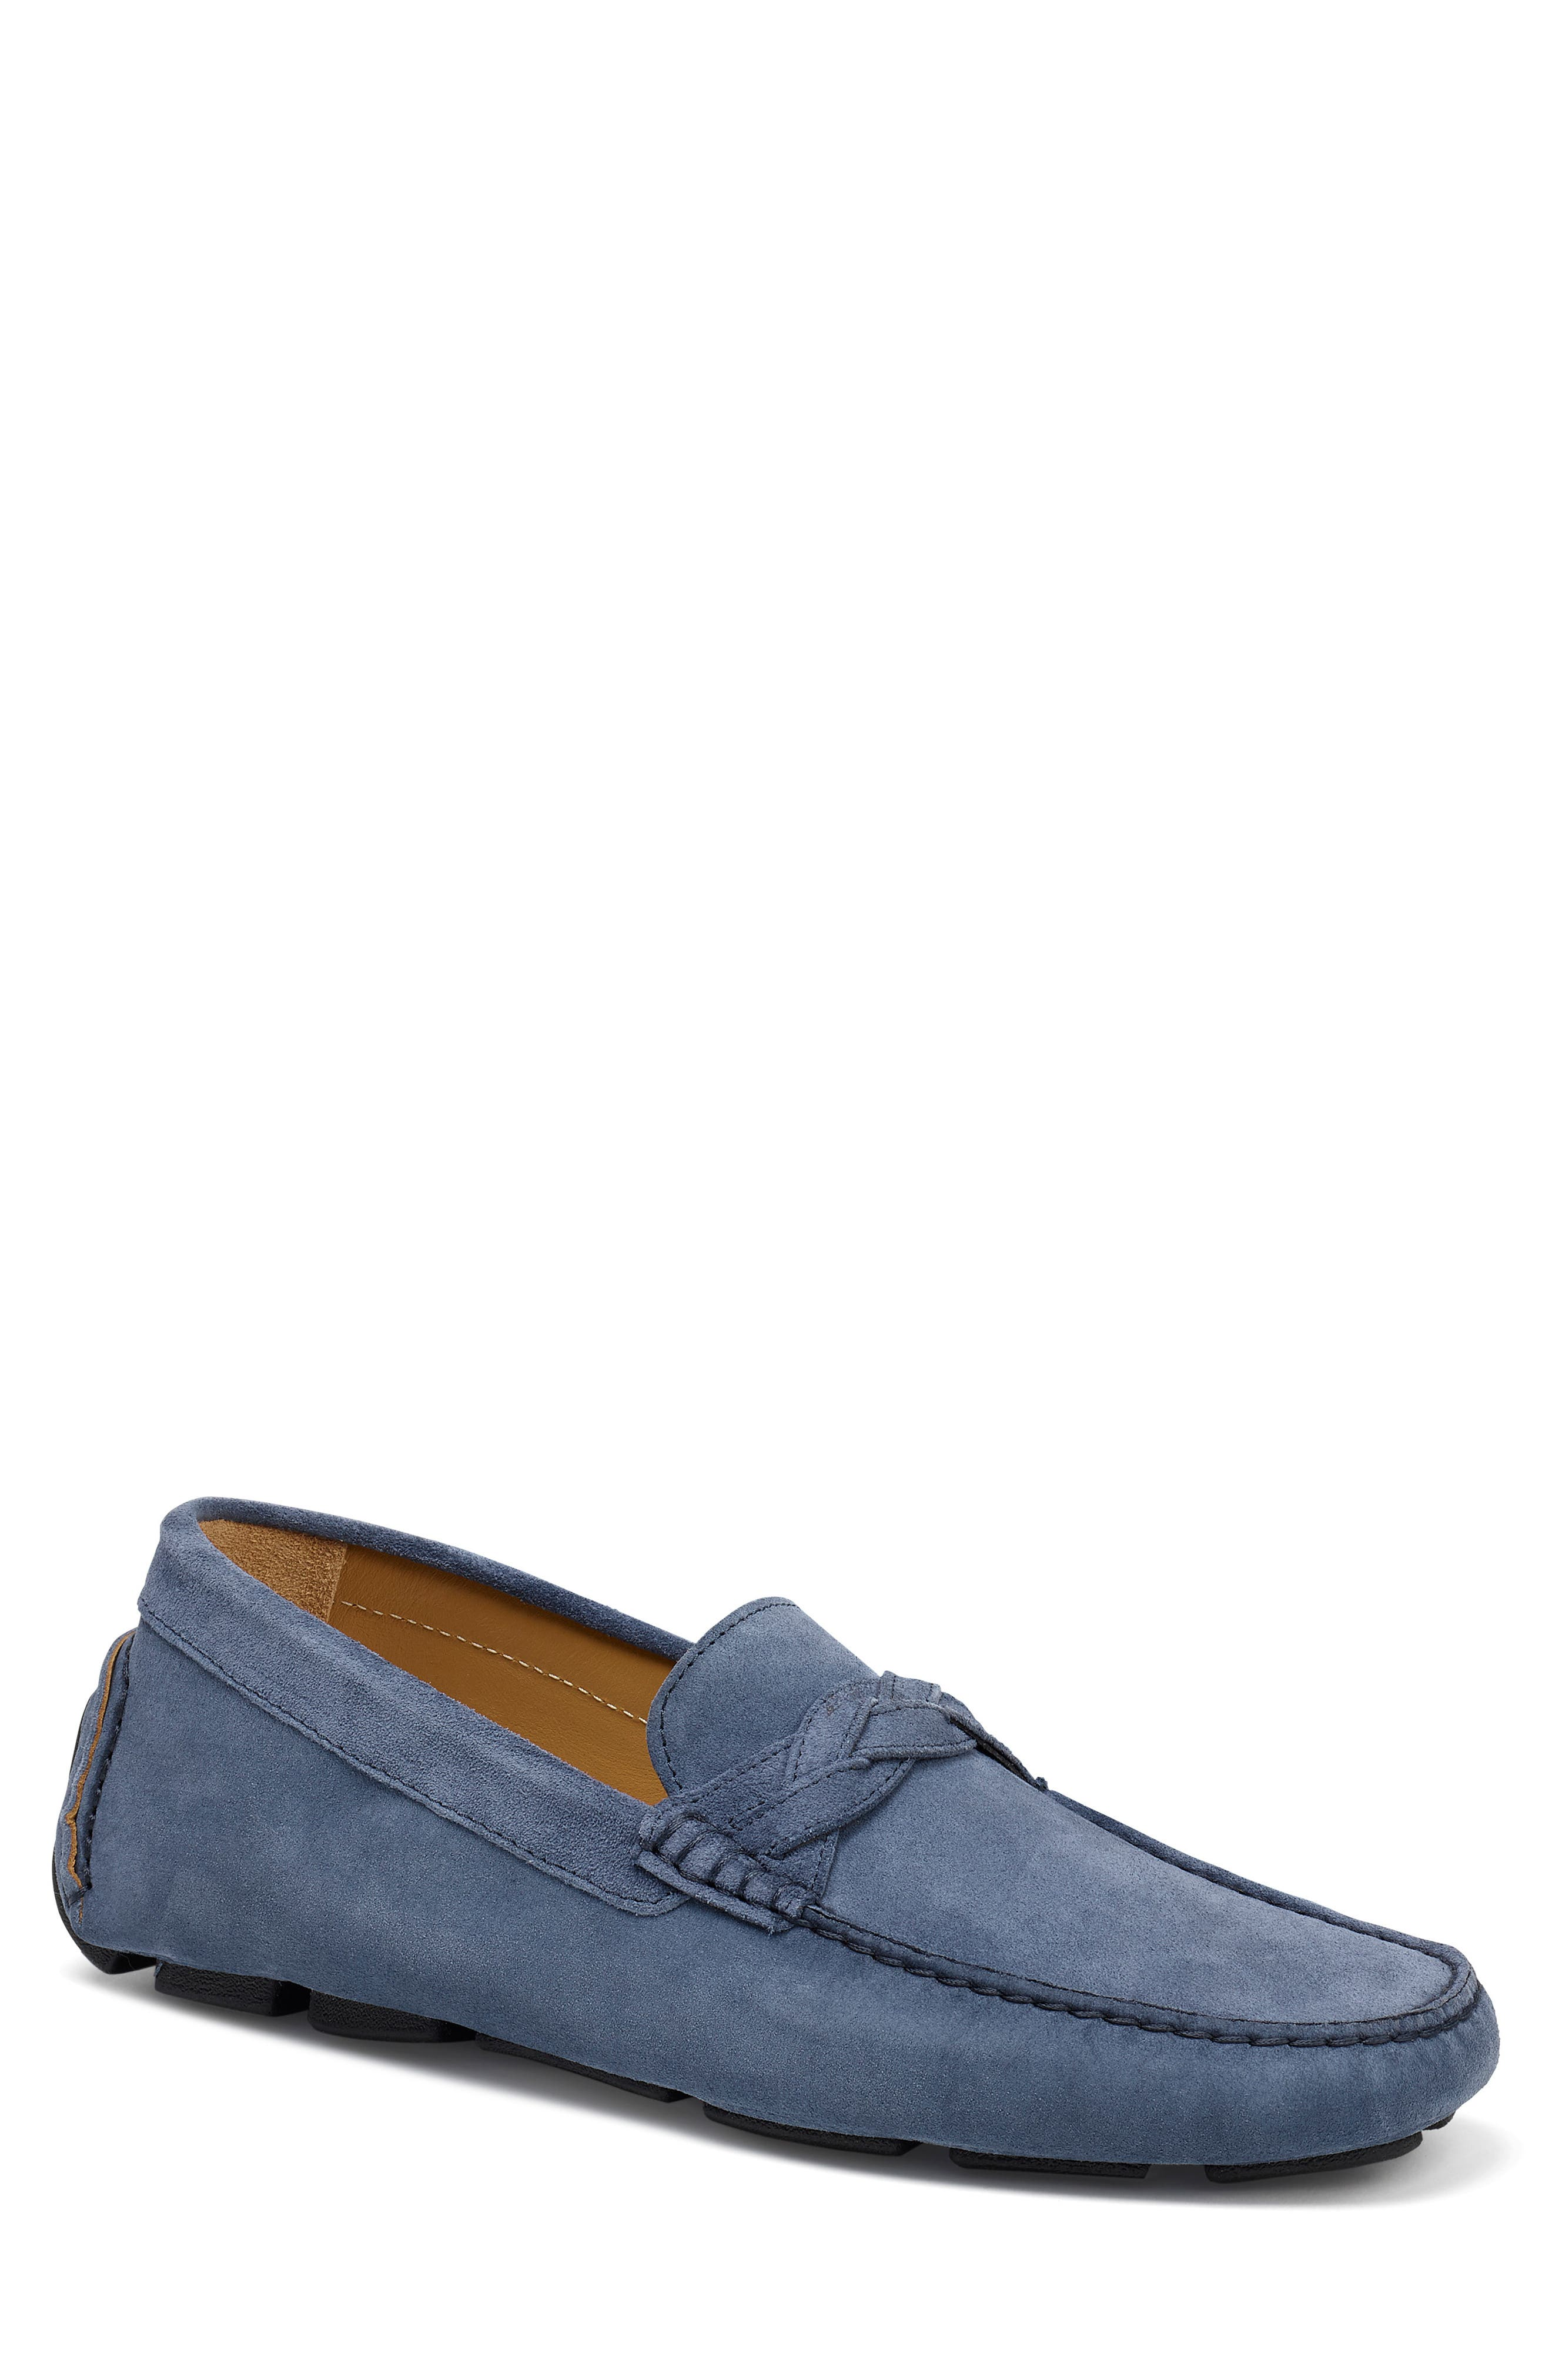 A handsome driving shoe from Italy is finely crafted of richly burnished calfskin with hand-braided detail and a grippy pod sole. Style Name: Trask Silas River Moc Toe Slip-On (Men). Style Number: 5804113 2. Available in stores.